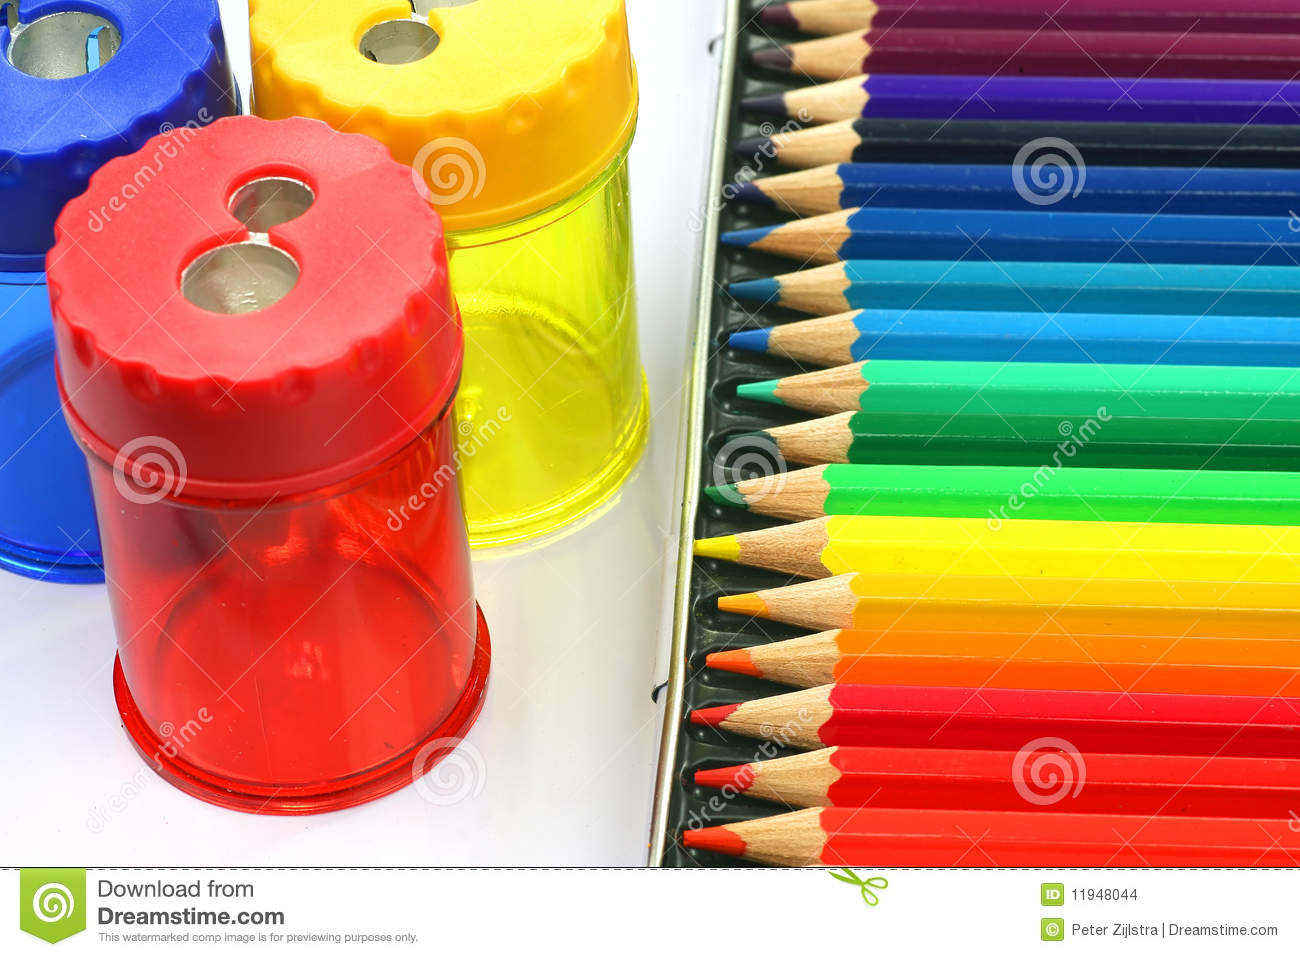 Coloring pencils and pencil sharpeners